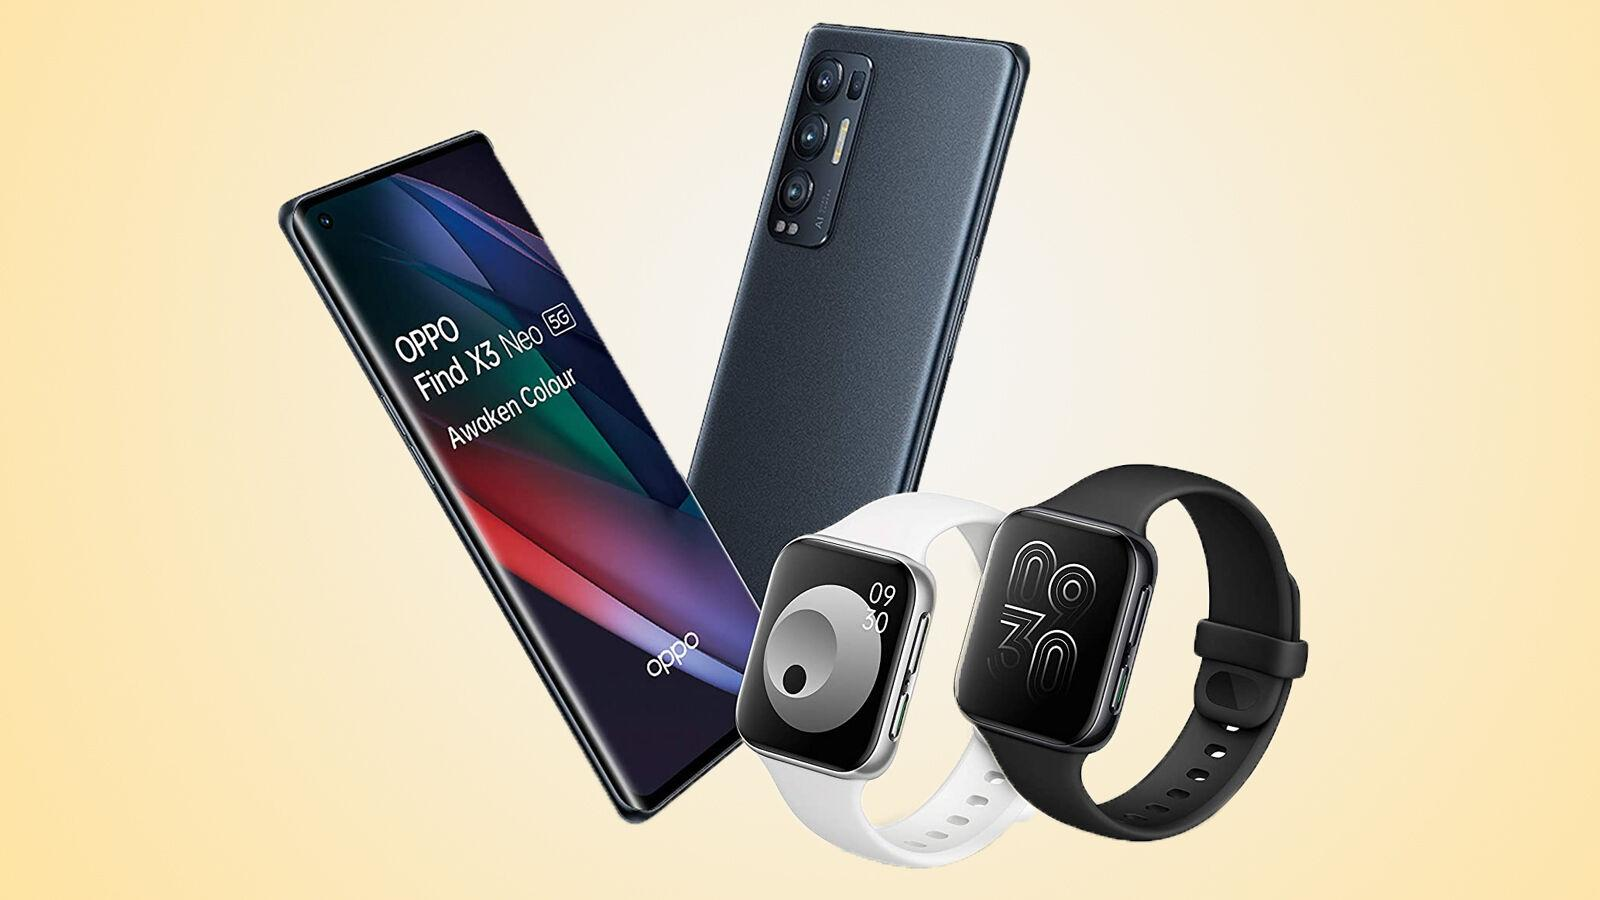 Oppo Find X3 Neo gifts